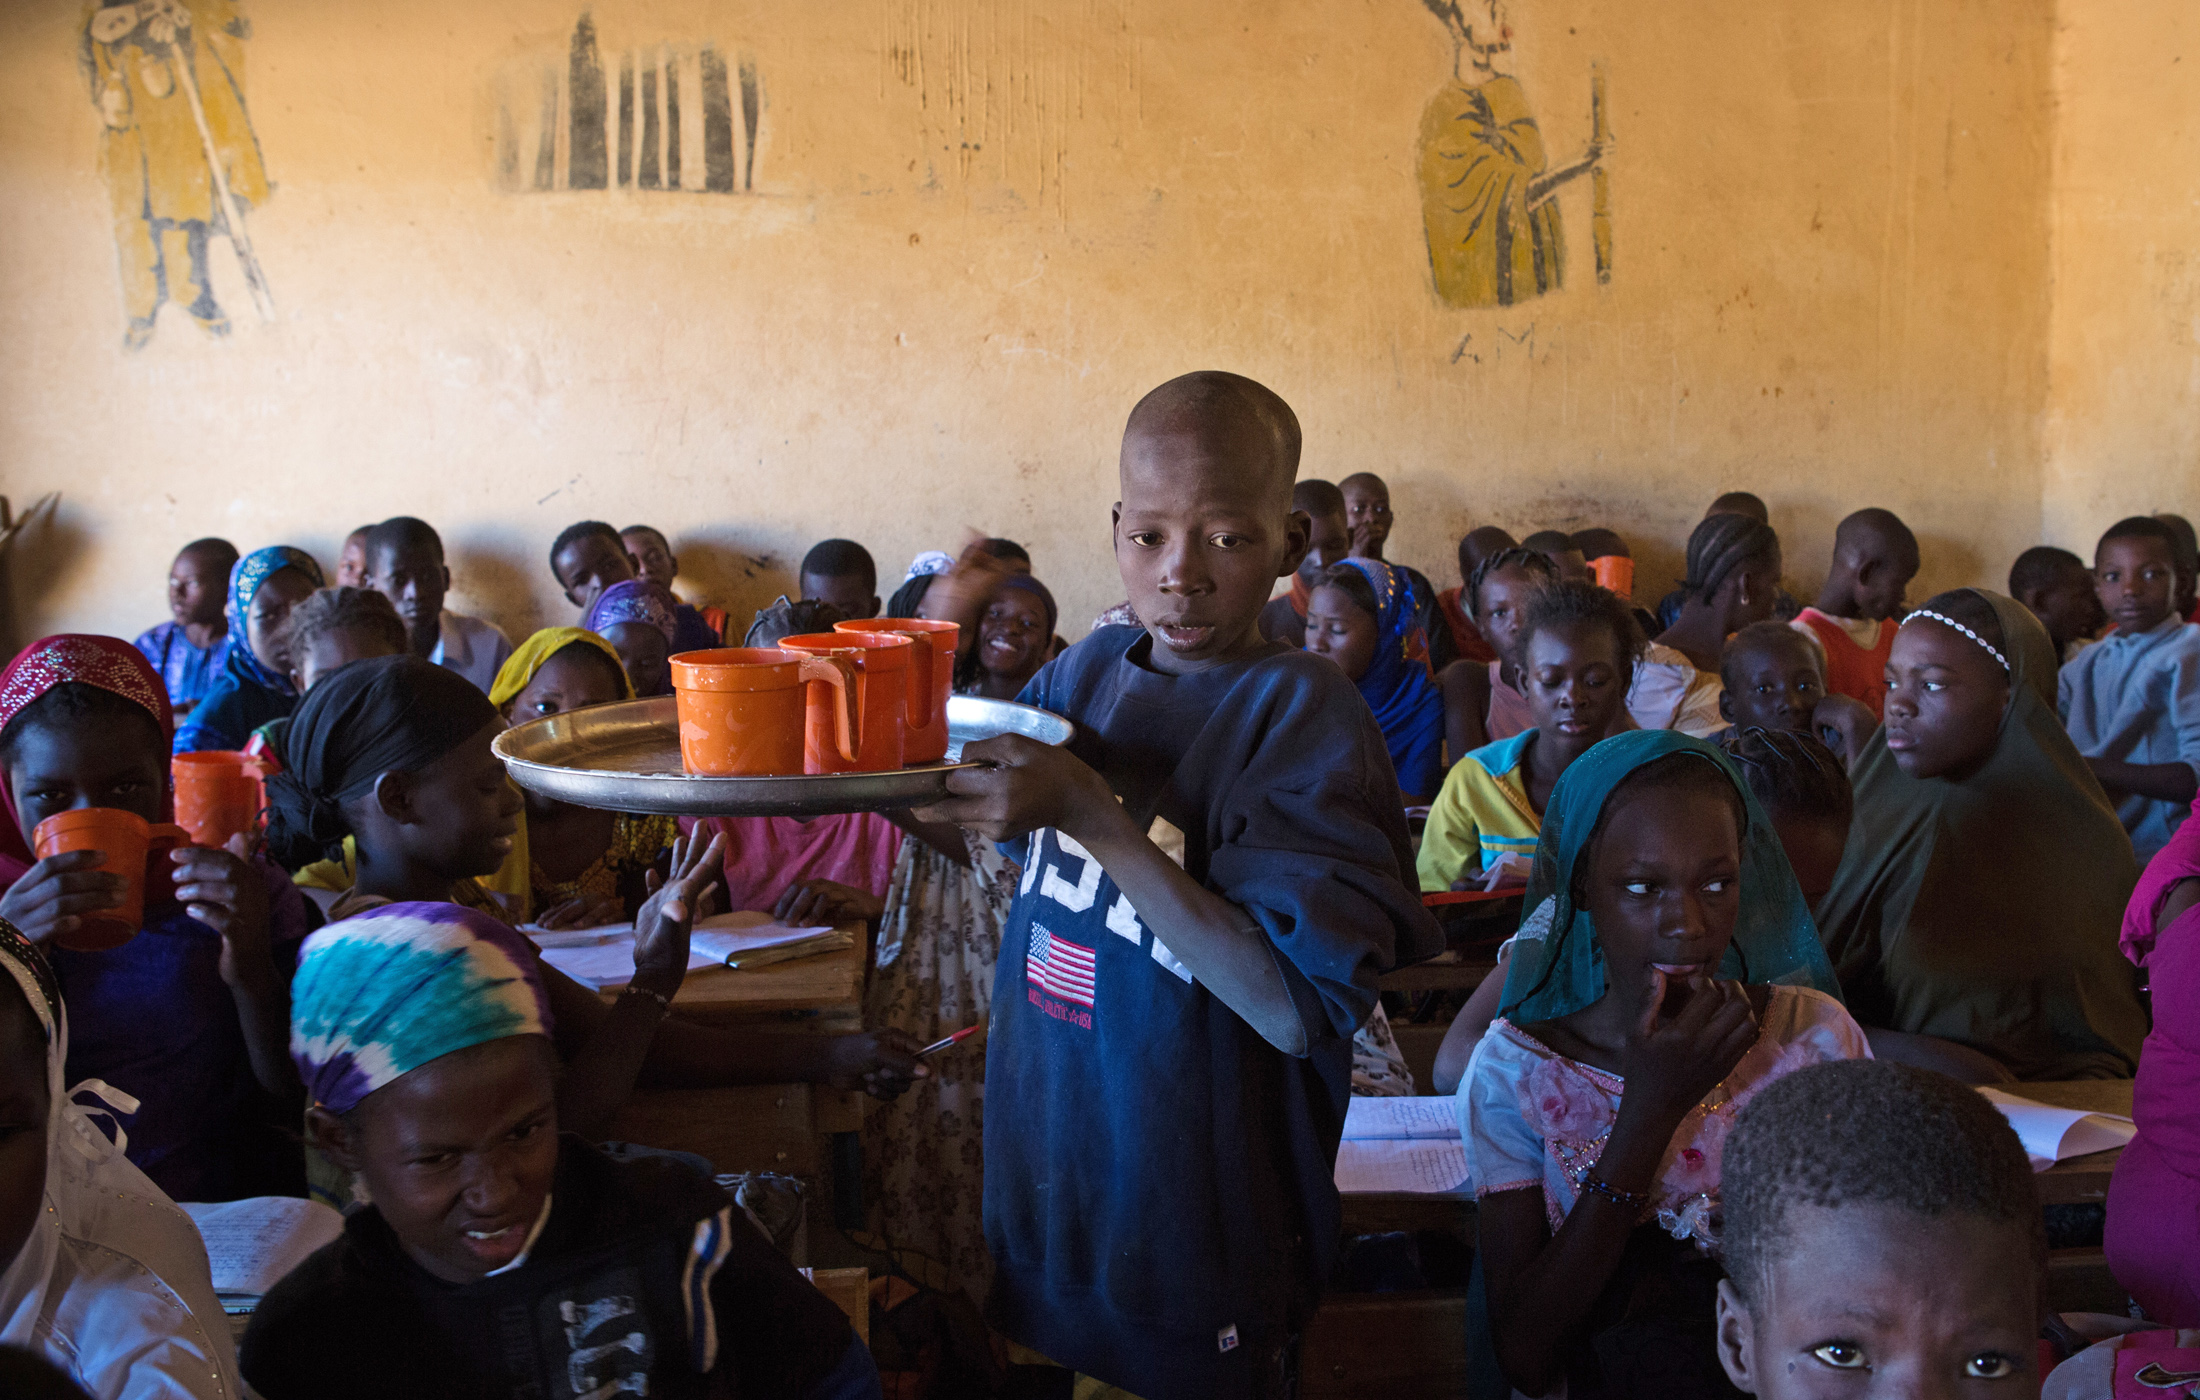 A student hands out meals to his fellow classmates in Gao, Mali. The World Food Program provides two meals a day to schools in Gao and other conflict-affected cities in northern Mali, such as Timbuktu. The emergency feeding program has seen a rise in atte